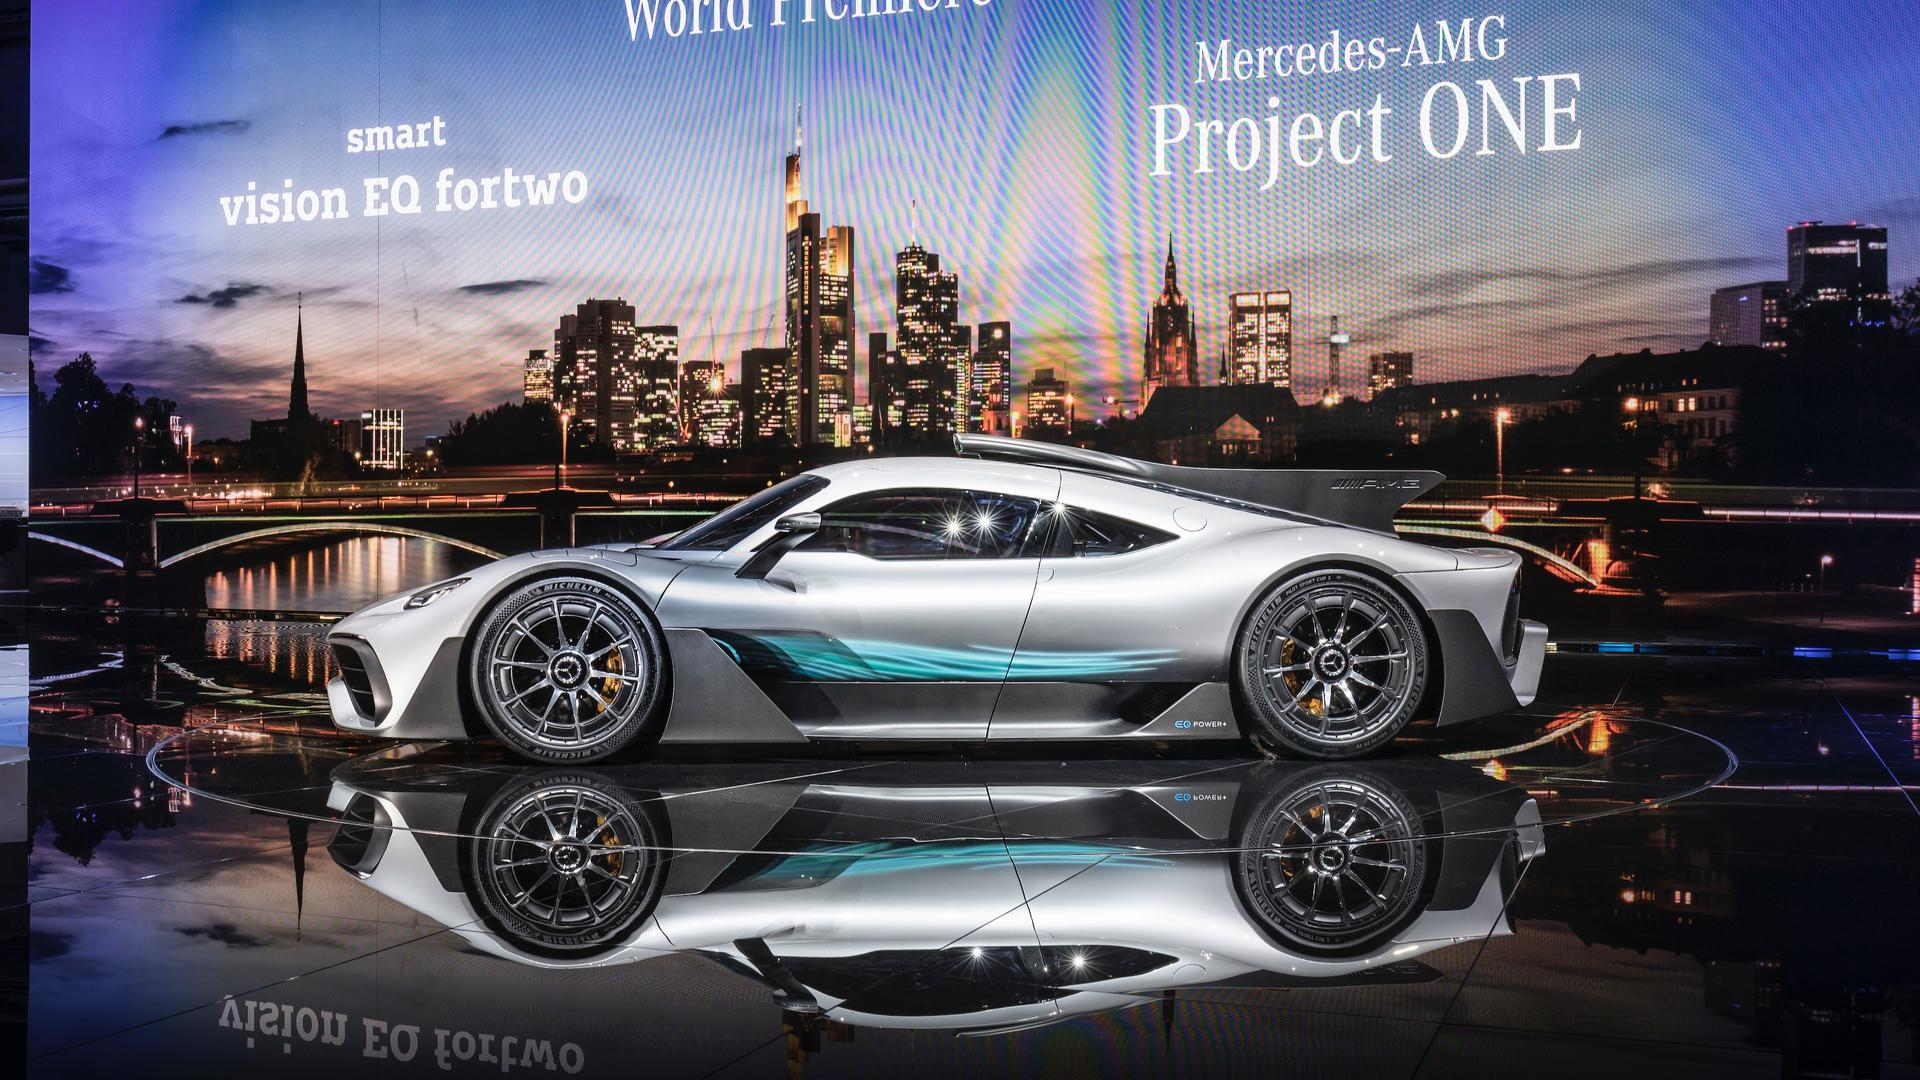 mercedes-amg-project-one-frankfurt-2017 (3)